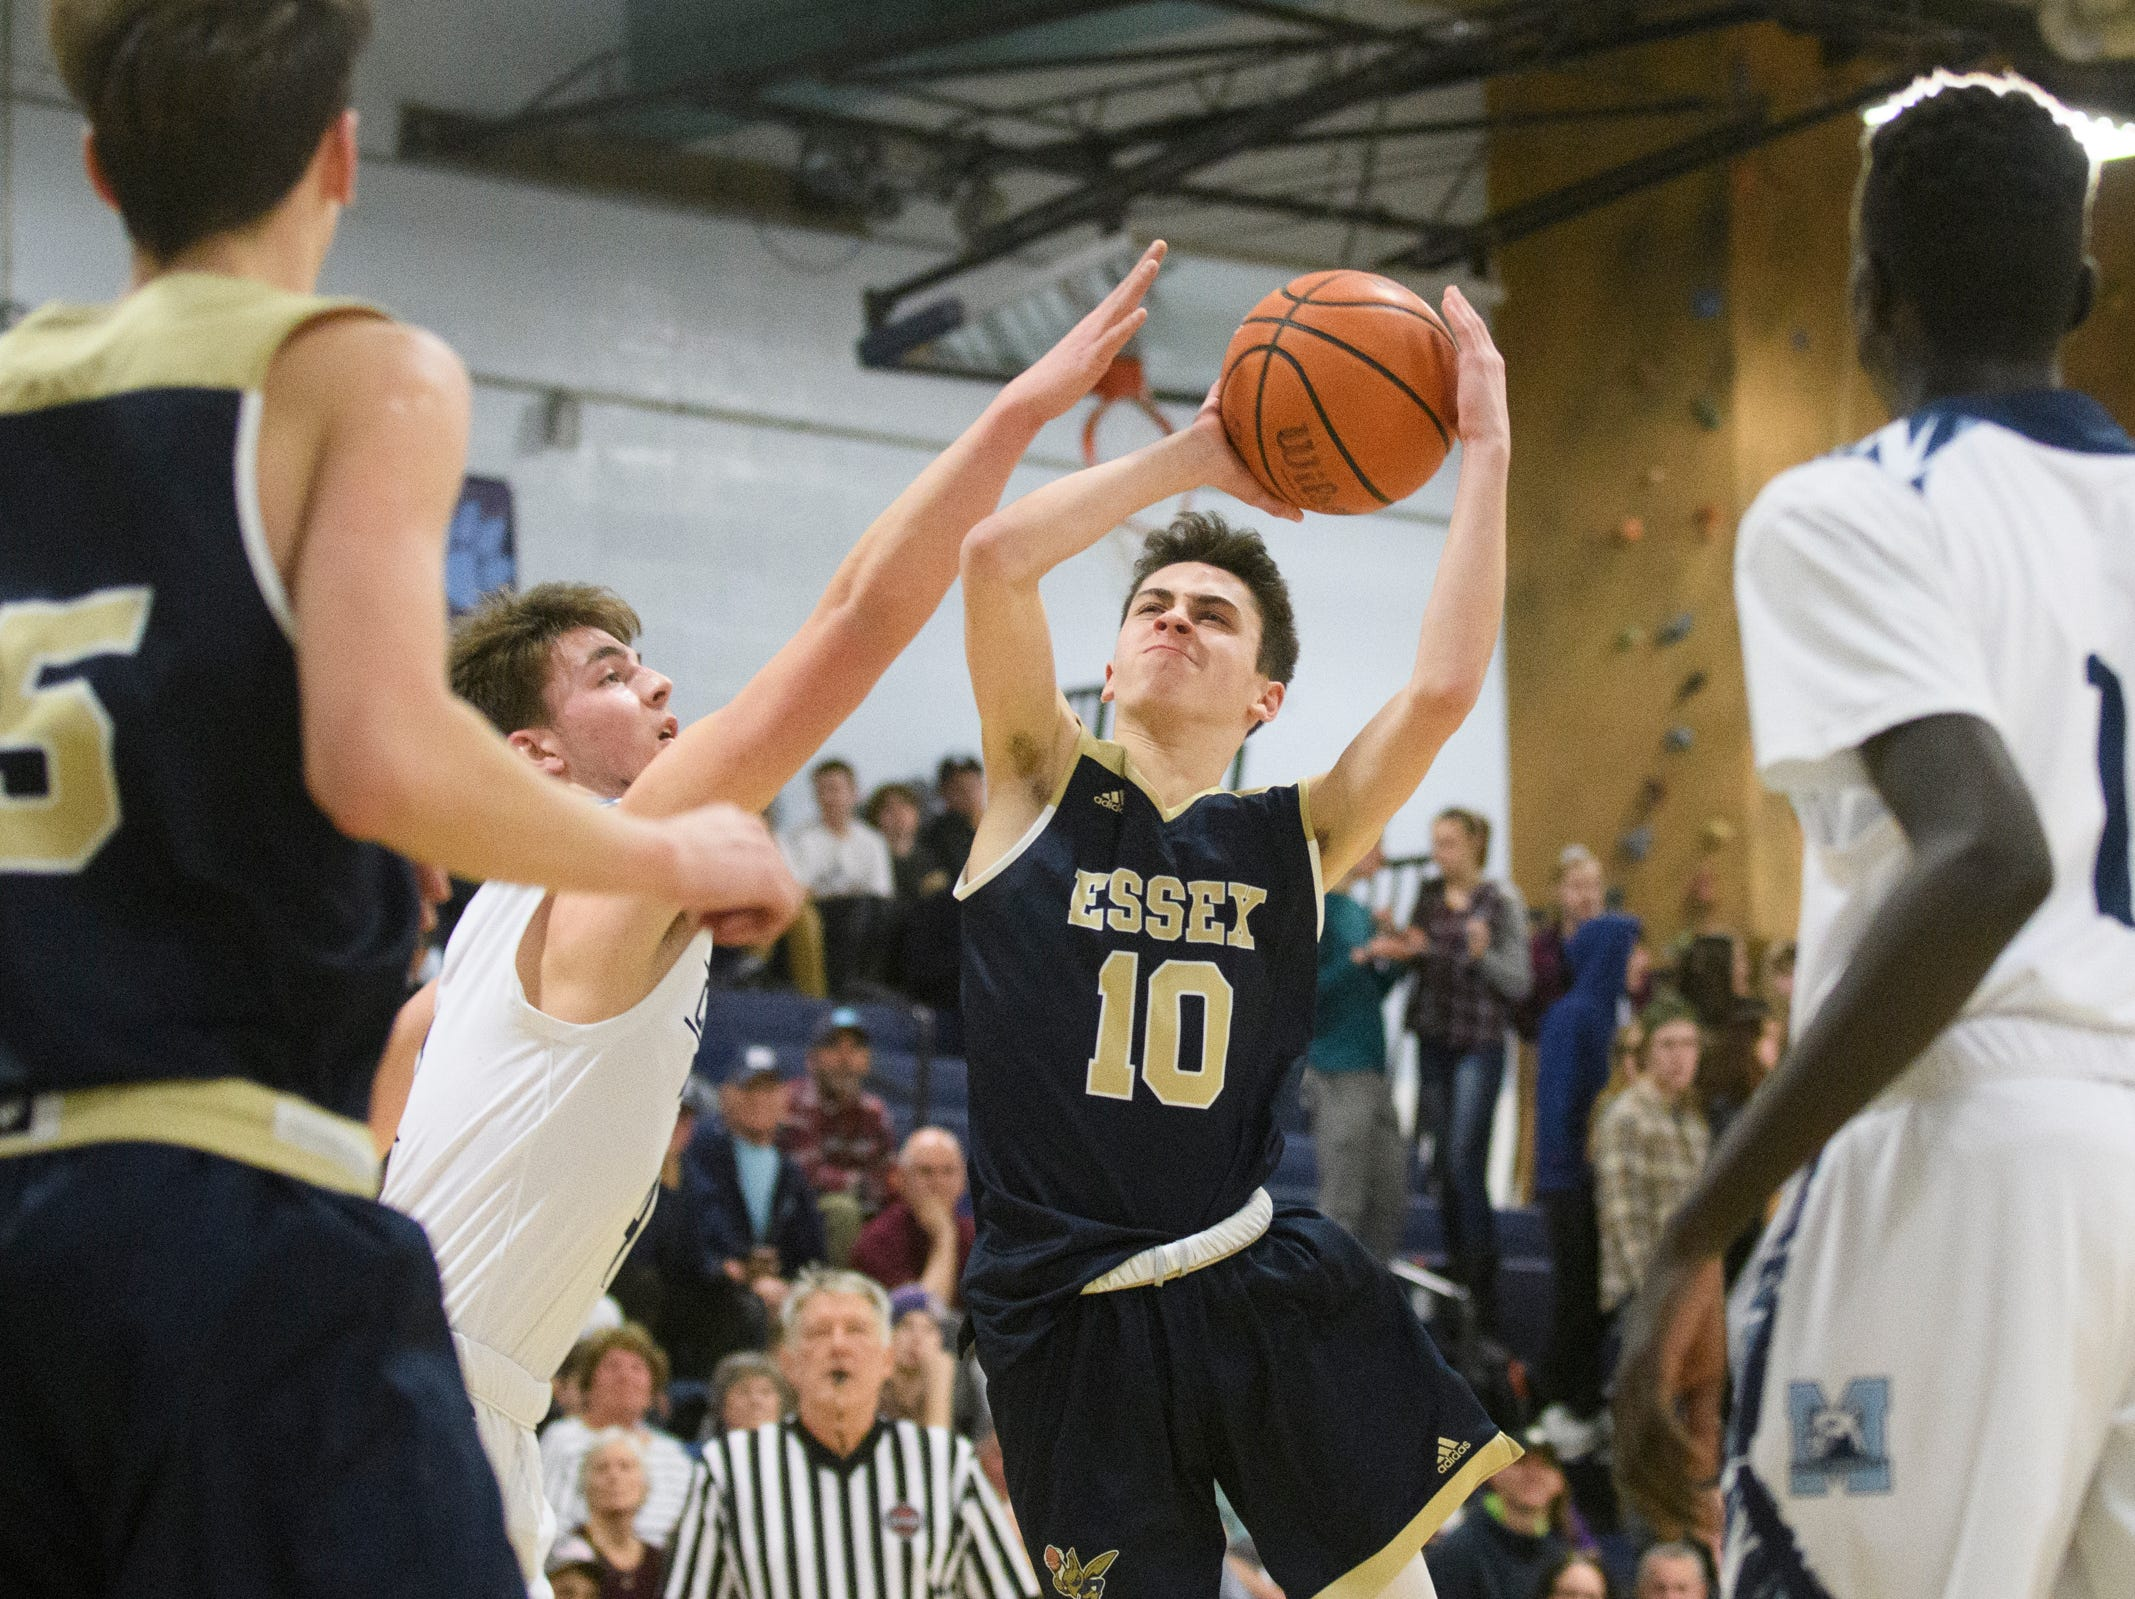 Essex's Aiden Paquette (10) leaps to take a shot during the boys basketball game between the Essex Hornets and the Mount Mansfield Cougars at MMU High School on Wednesday night February 13, 2019 in Jericho, Vermont.